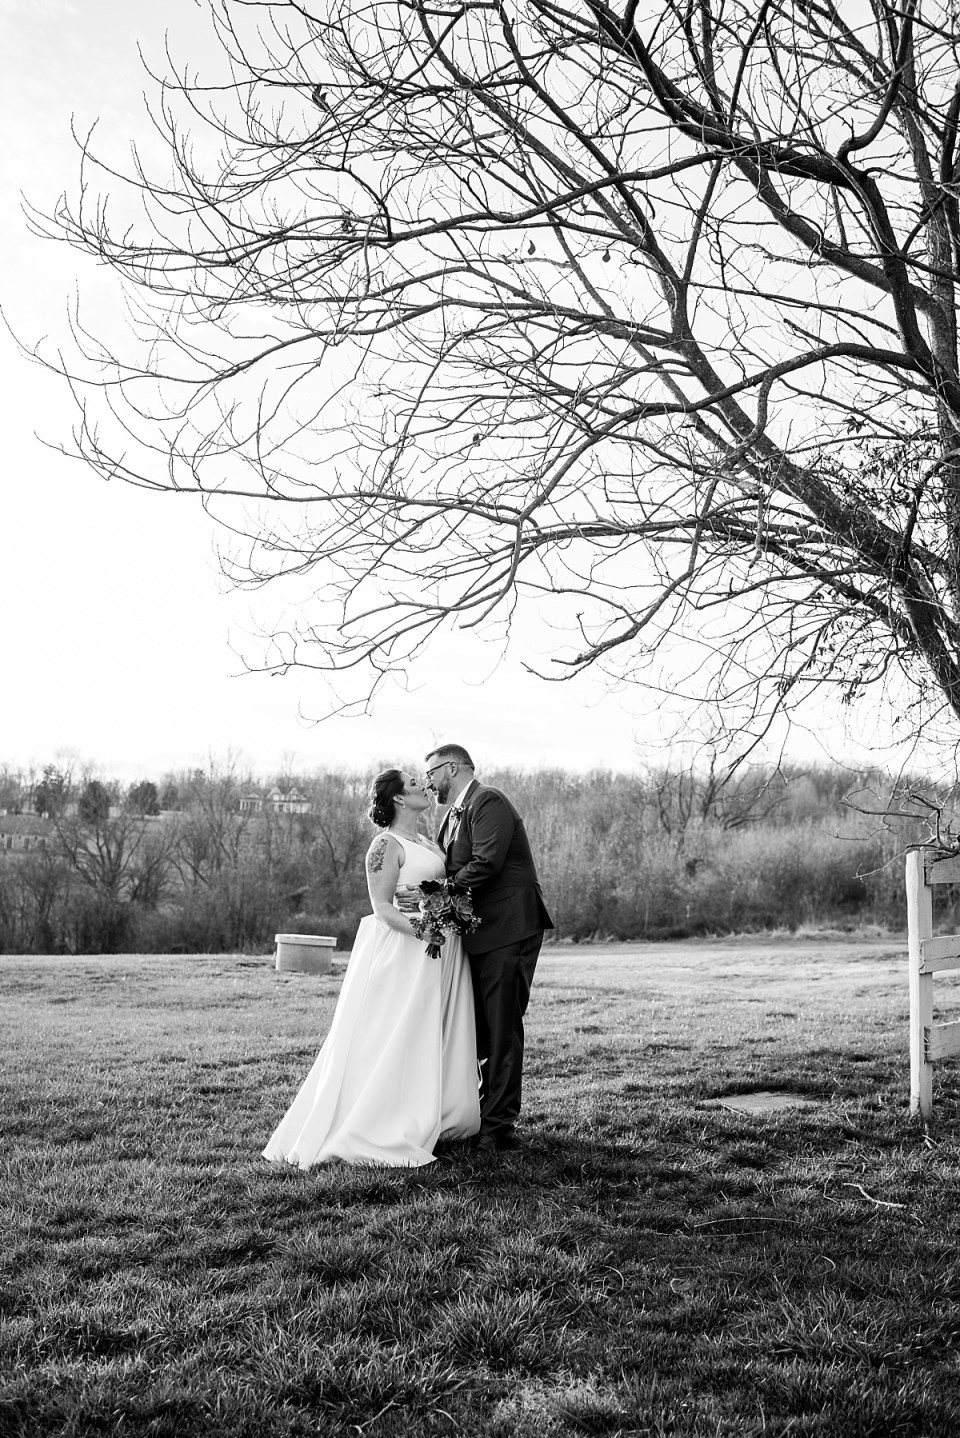 Leap Day Wedding at Briar Patch Bed and Breakfast in Middleburg, VA. Wedding Photography by Erin Tetterton Photography